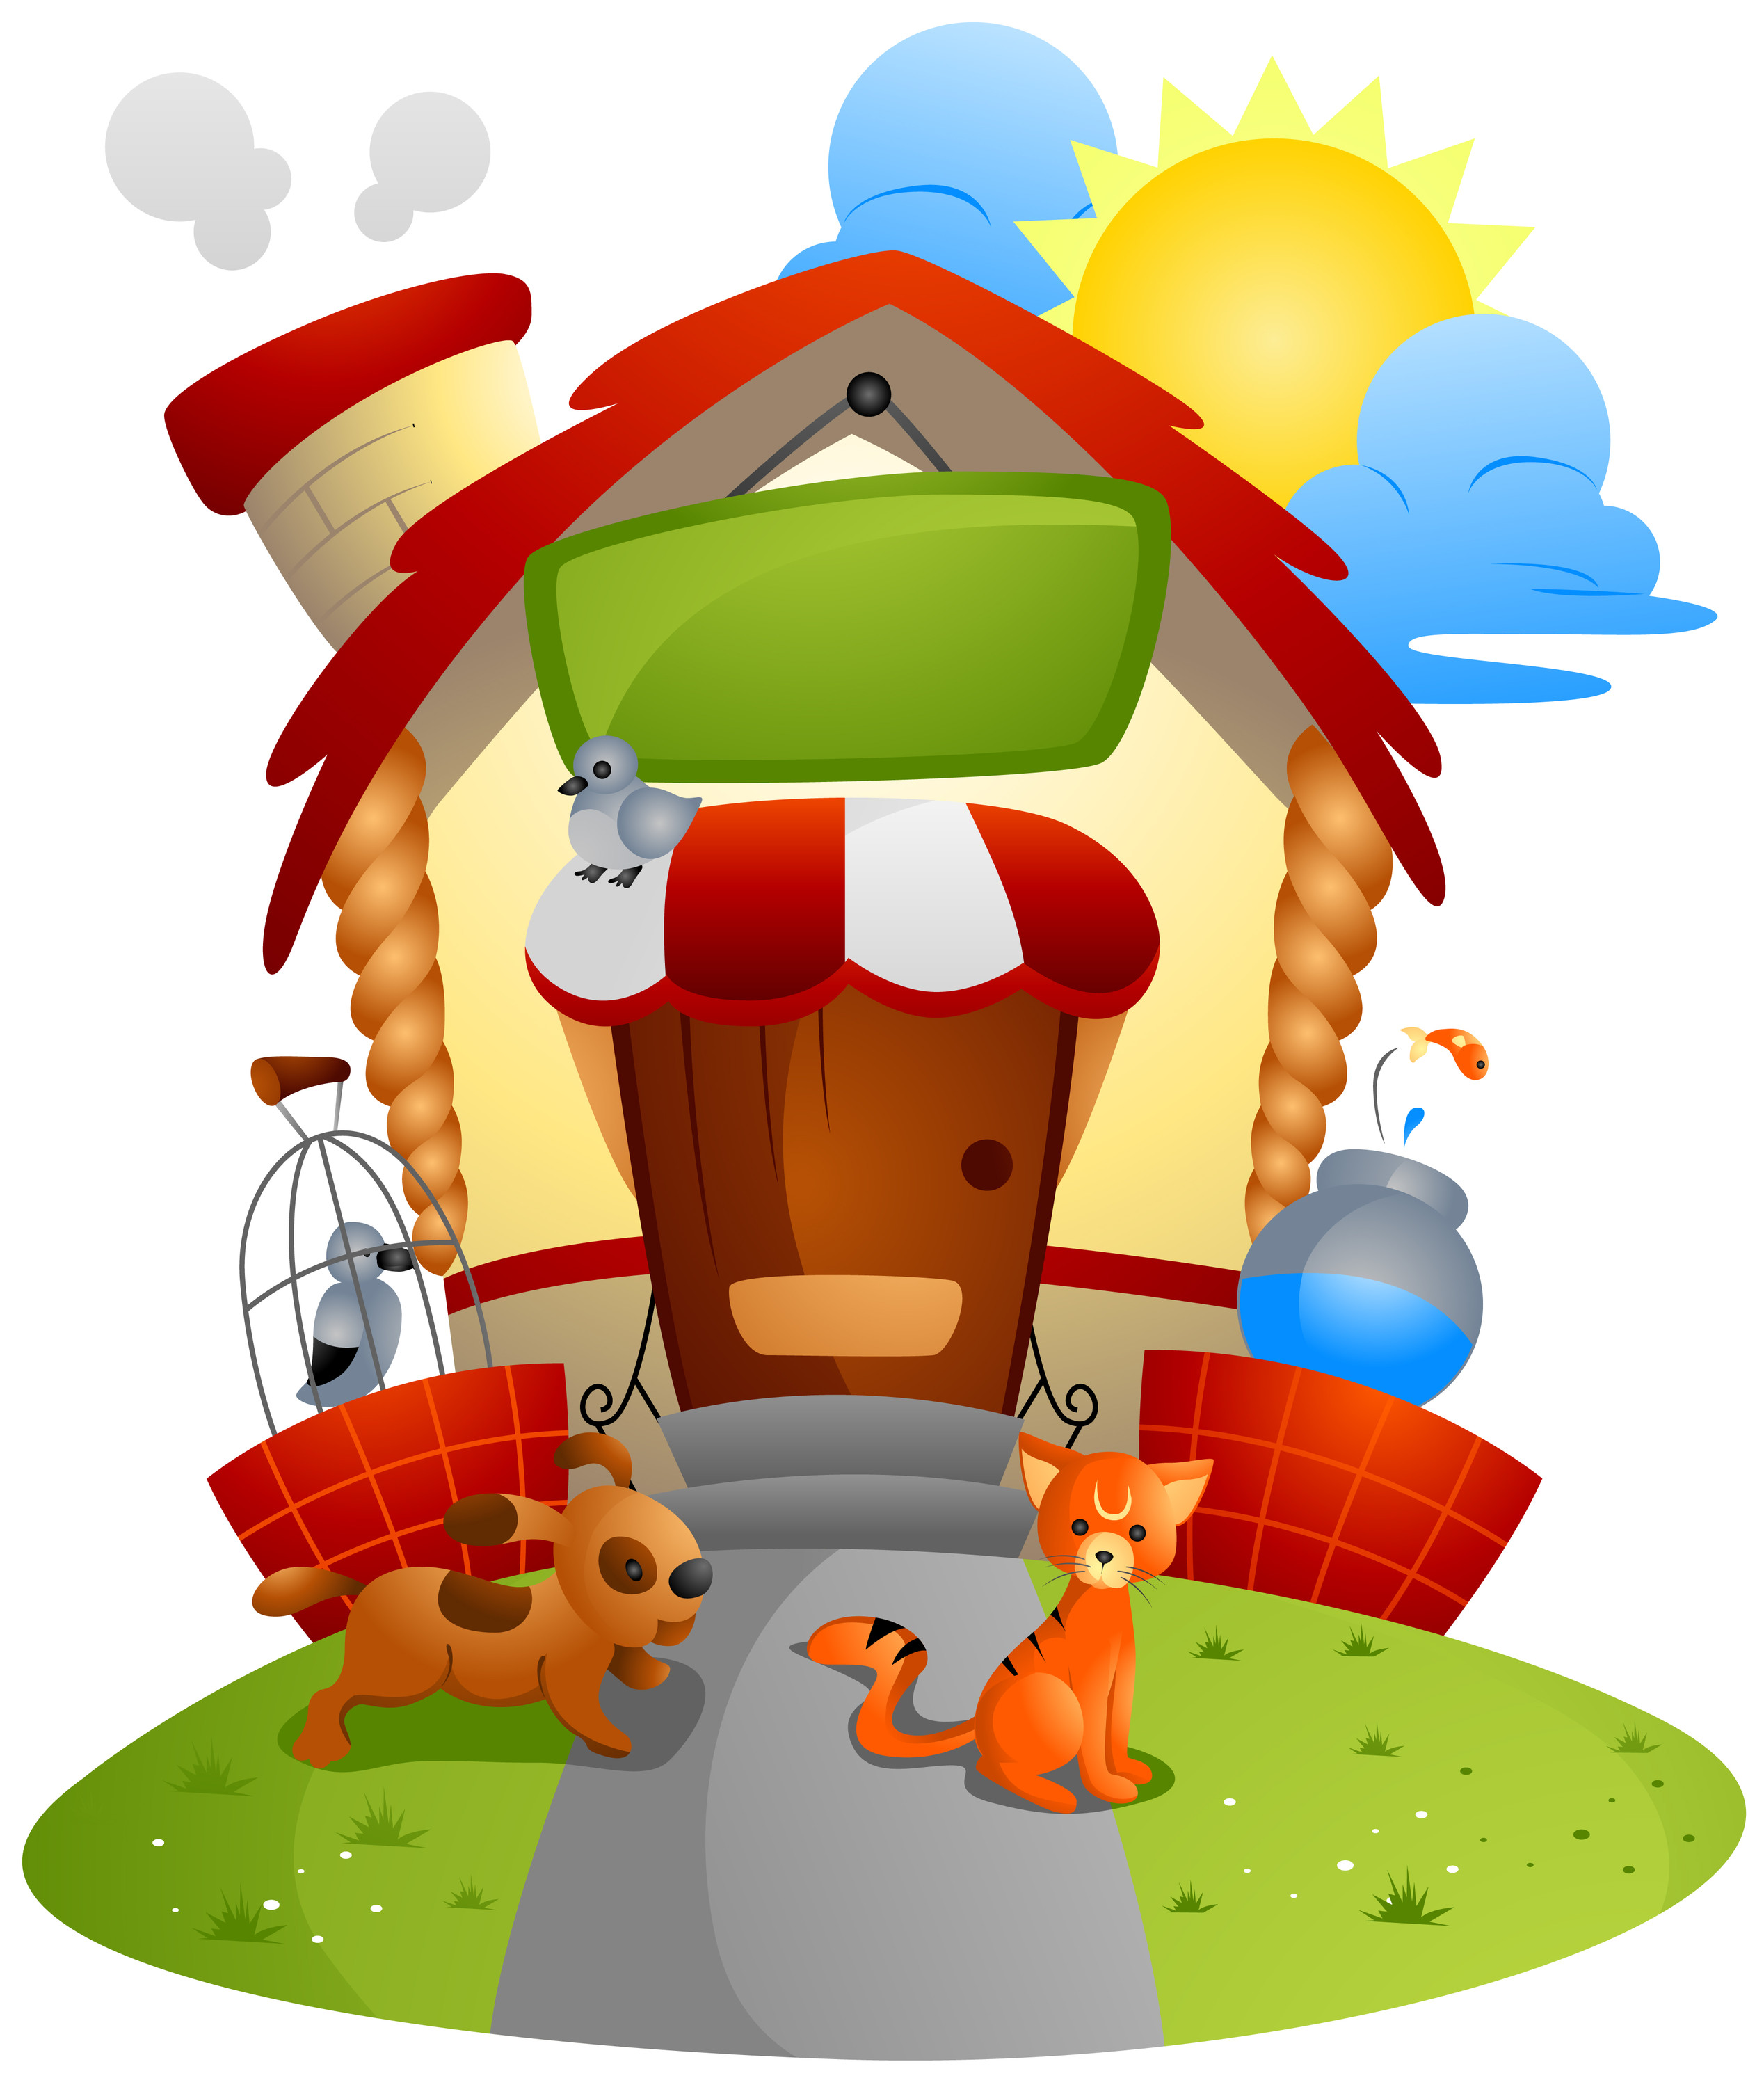 Free cliparts download clip. Pet clipart house